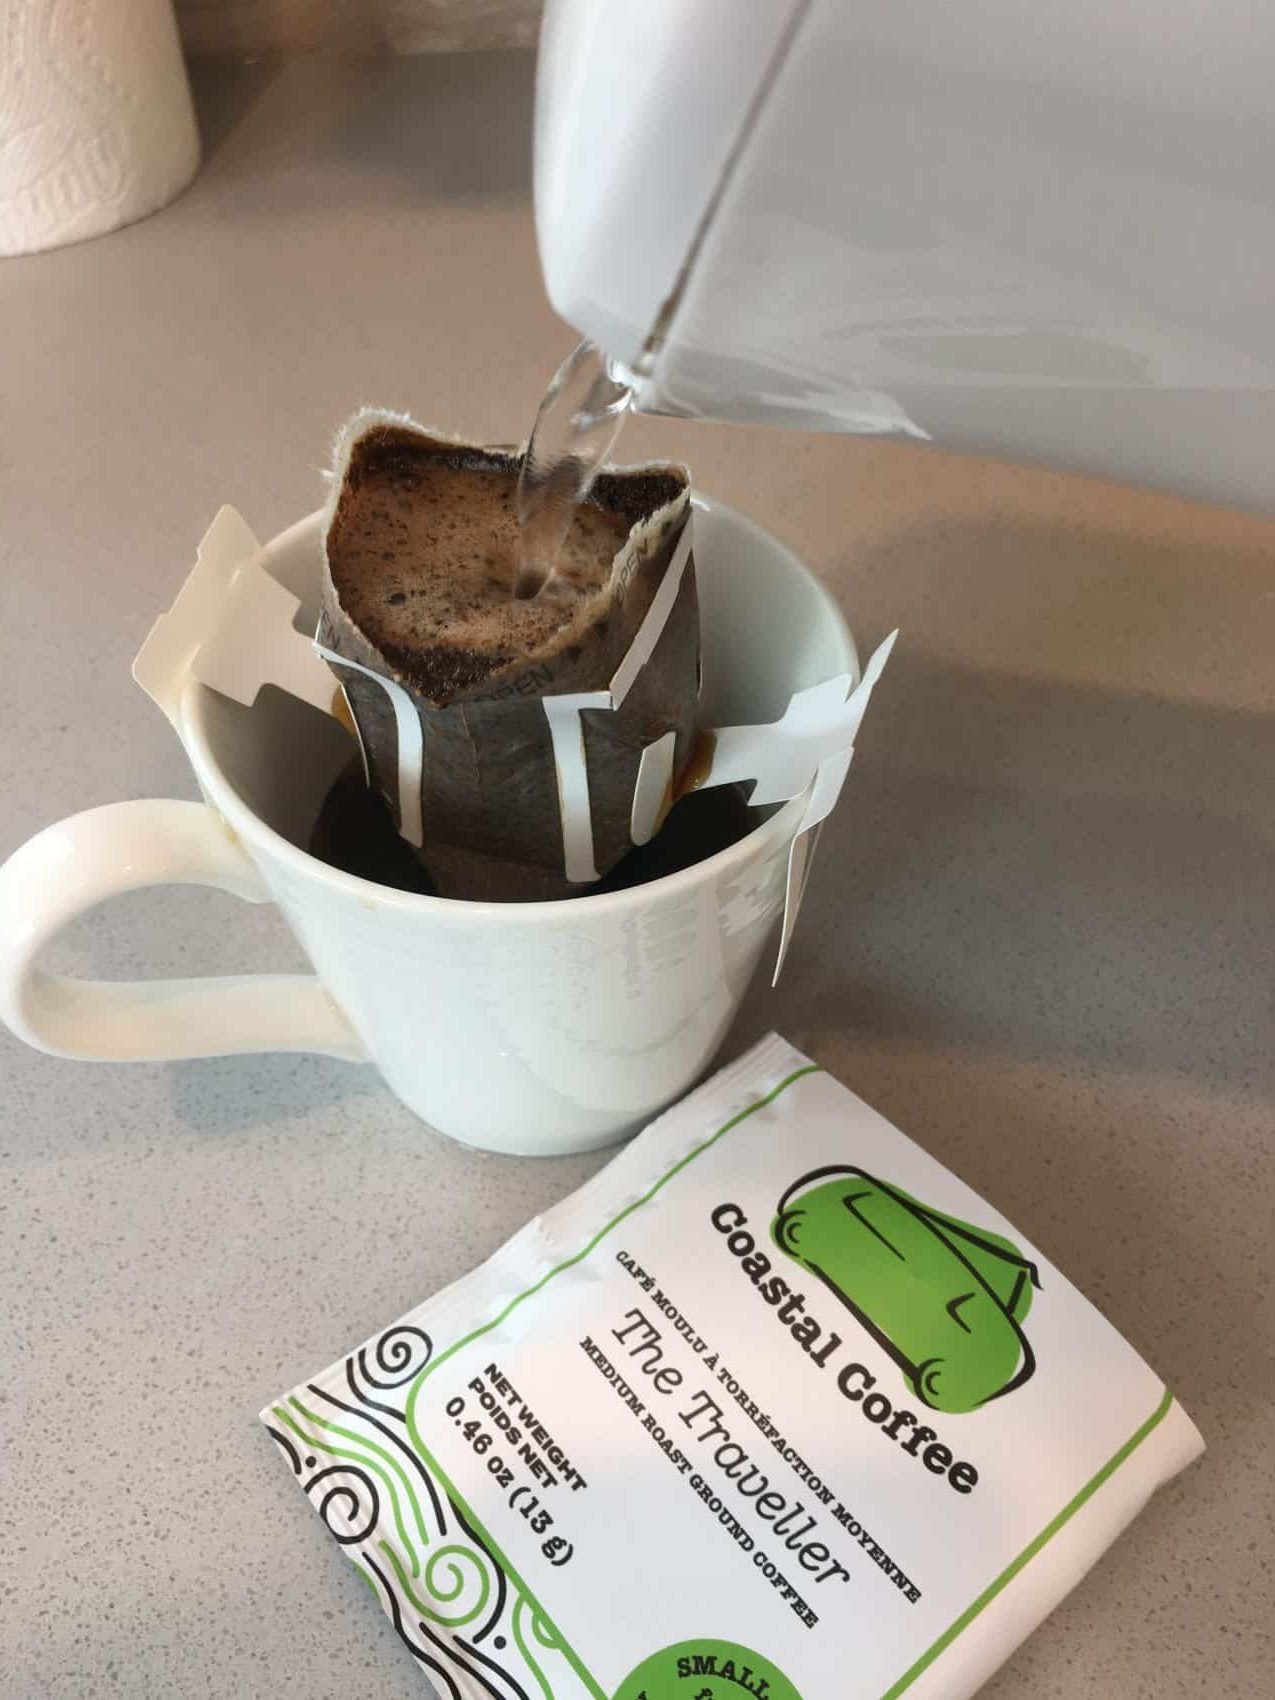 The Traveller pour over coffee single serve packet